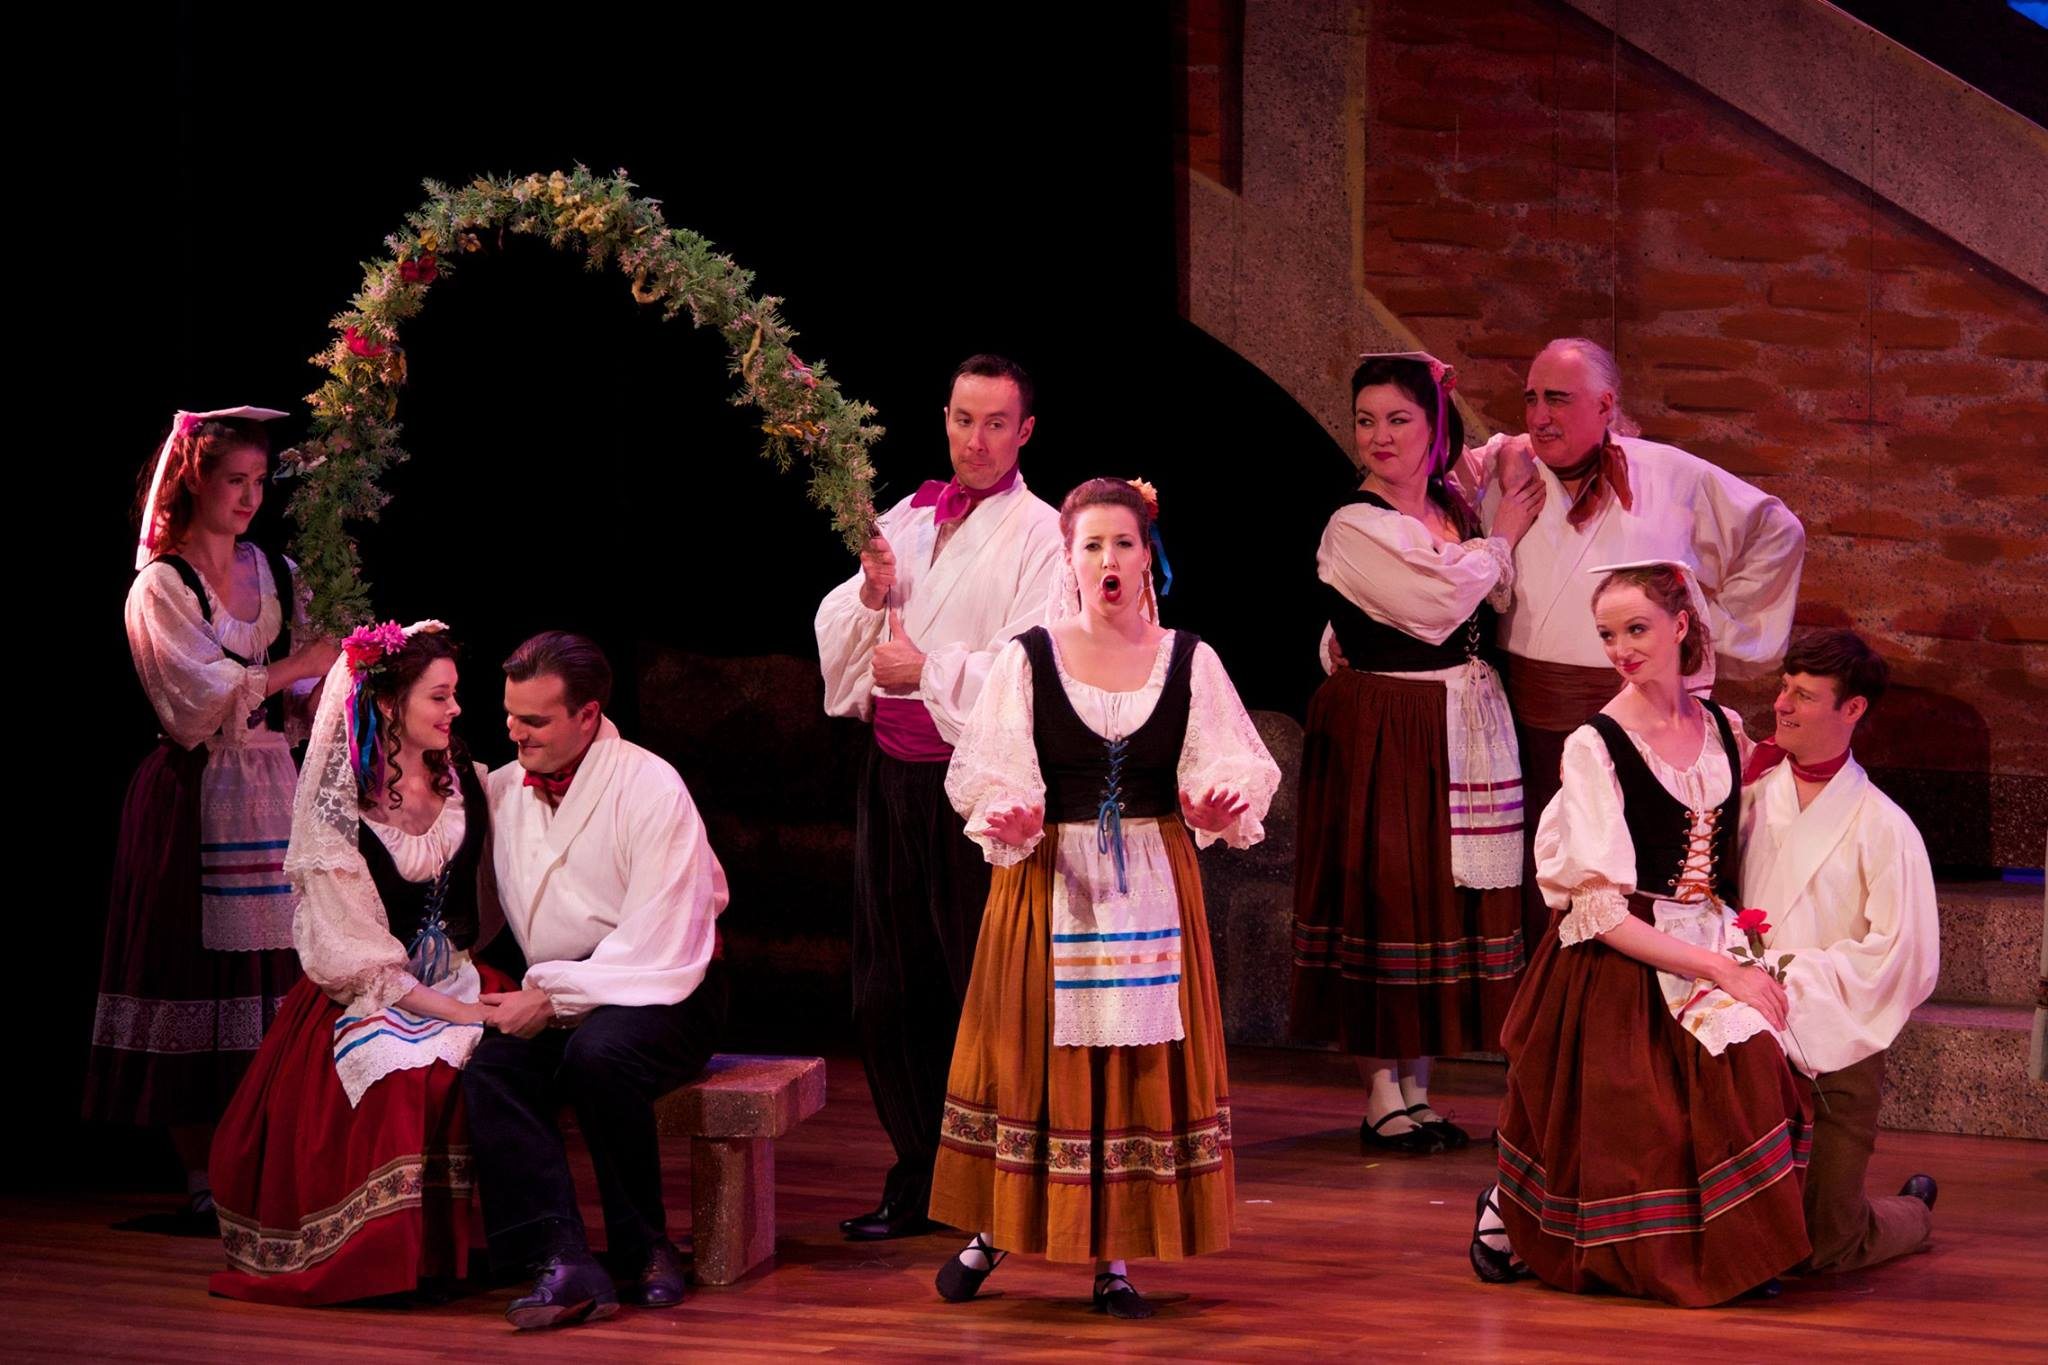 Tessa ( The Gondoliers ) at Skirball Center for the Performing Arts (Credit: William Reynolds)